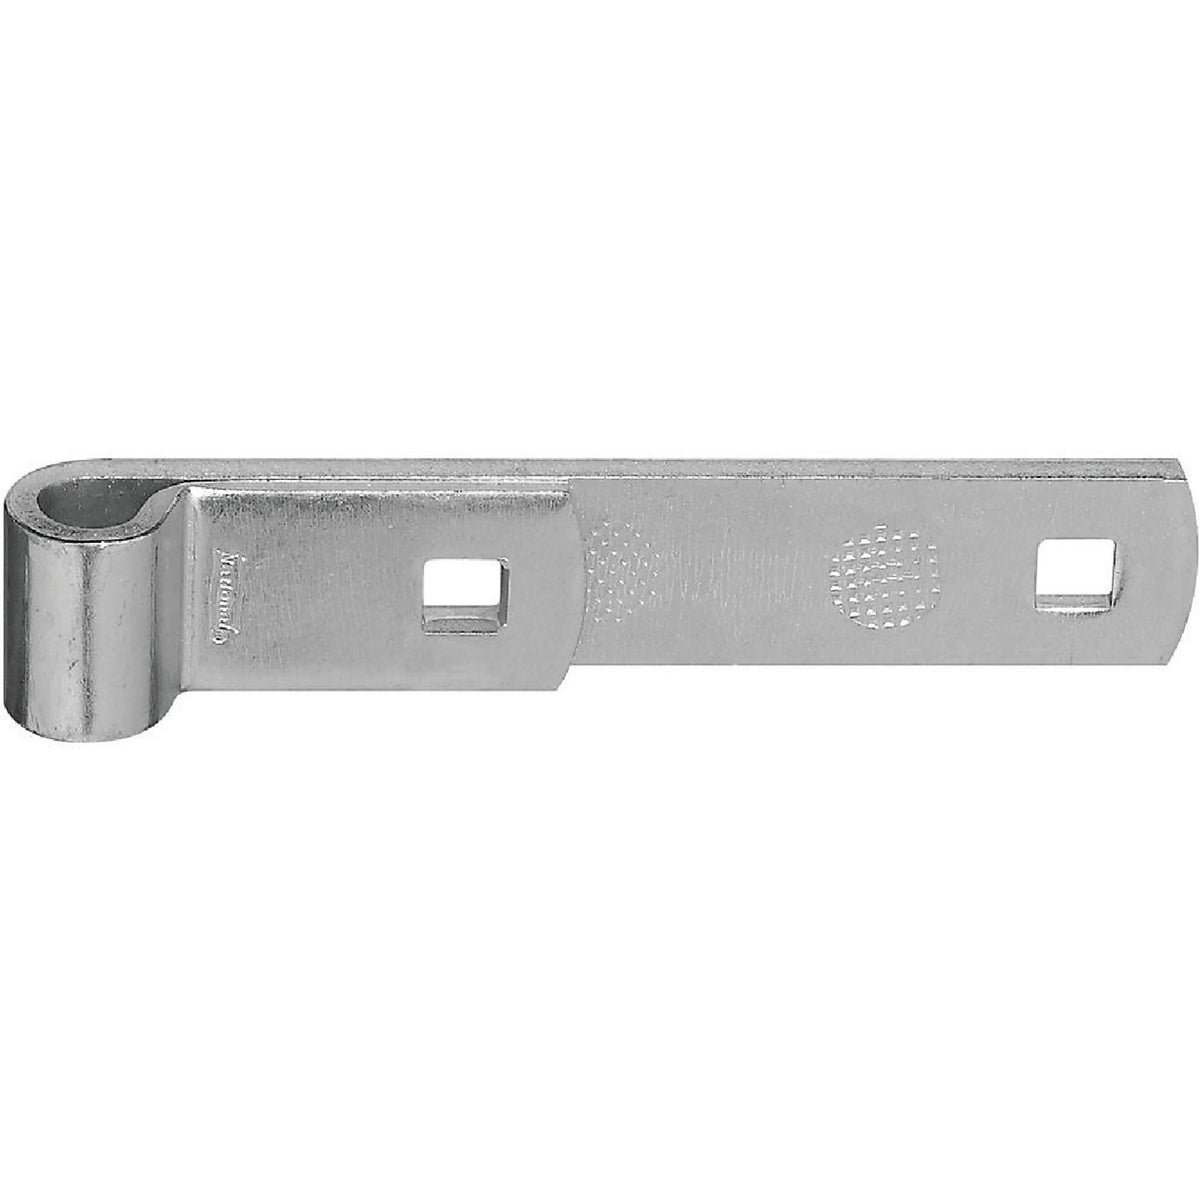 "6"" ZN HINGE STRAP - N131060 by National Mfg Co"